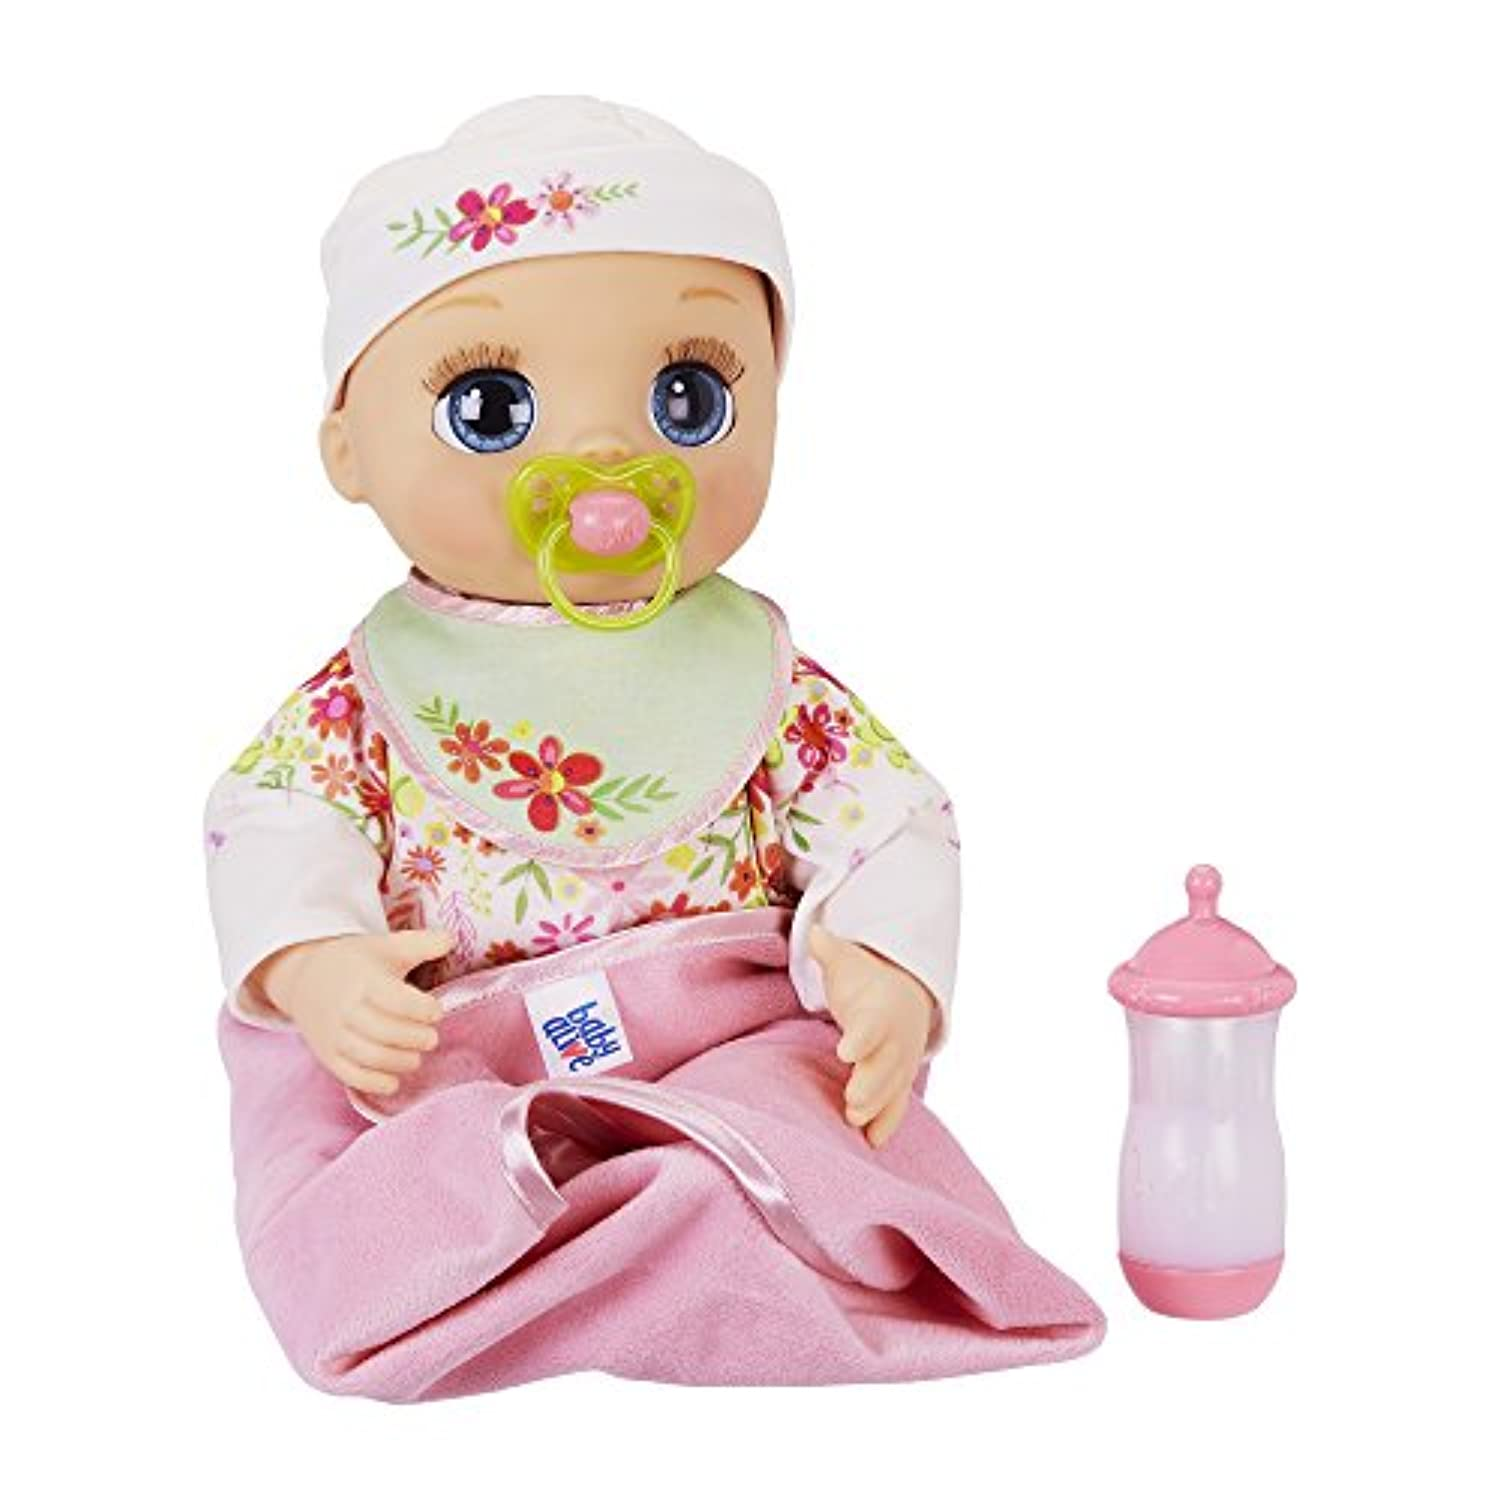 Classier: Buy Baby Alive Baby Alive Real As Can Be Baby: Realistic Blonde Baby Doll, 80+ Lifelike Expressions, Movements & Real Baby Sounds, With Doll Accessories, Toy for Girls and Boys 3 and Up